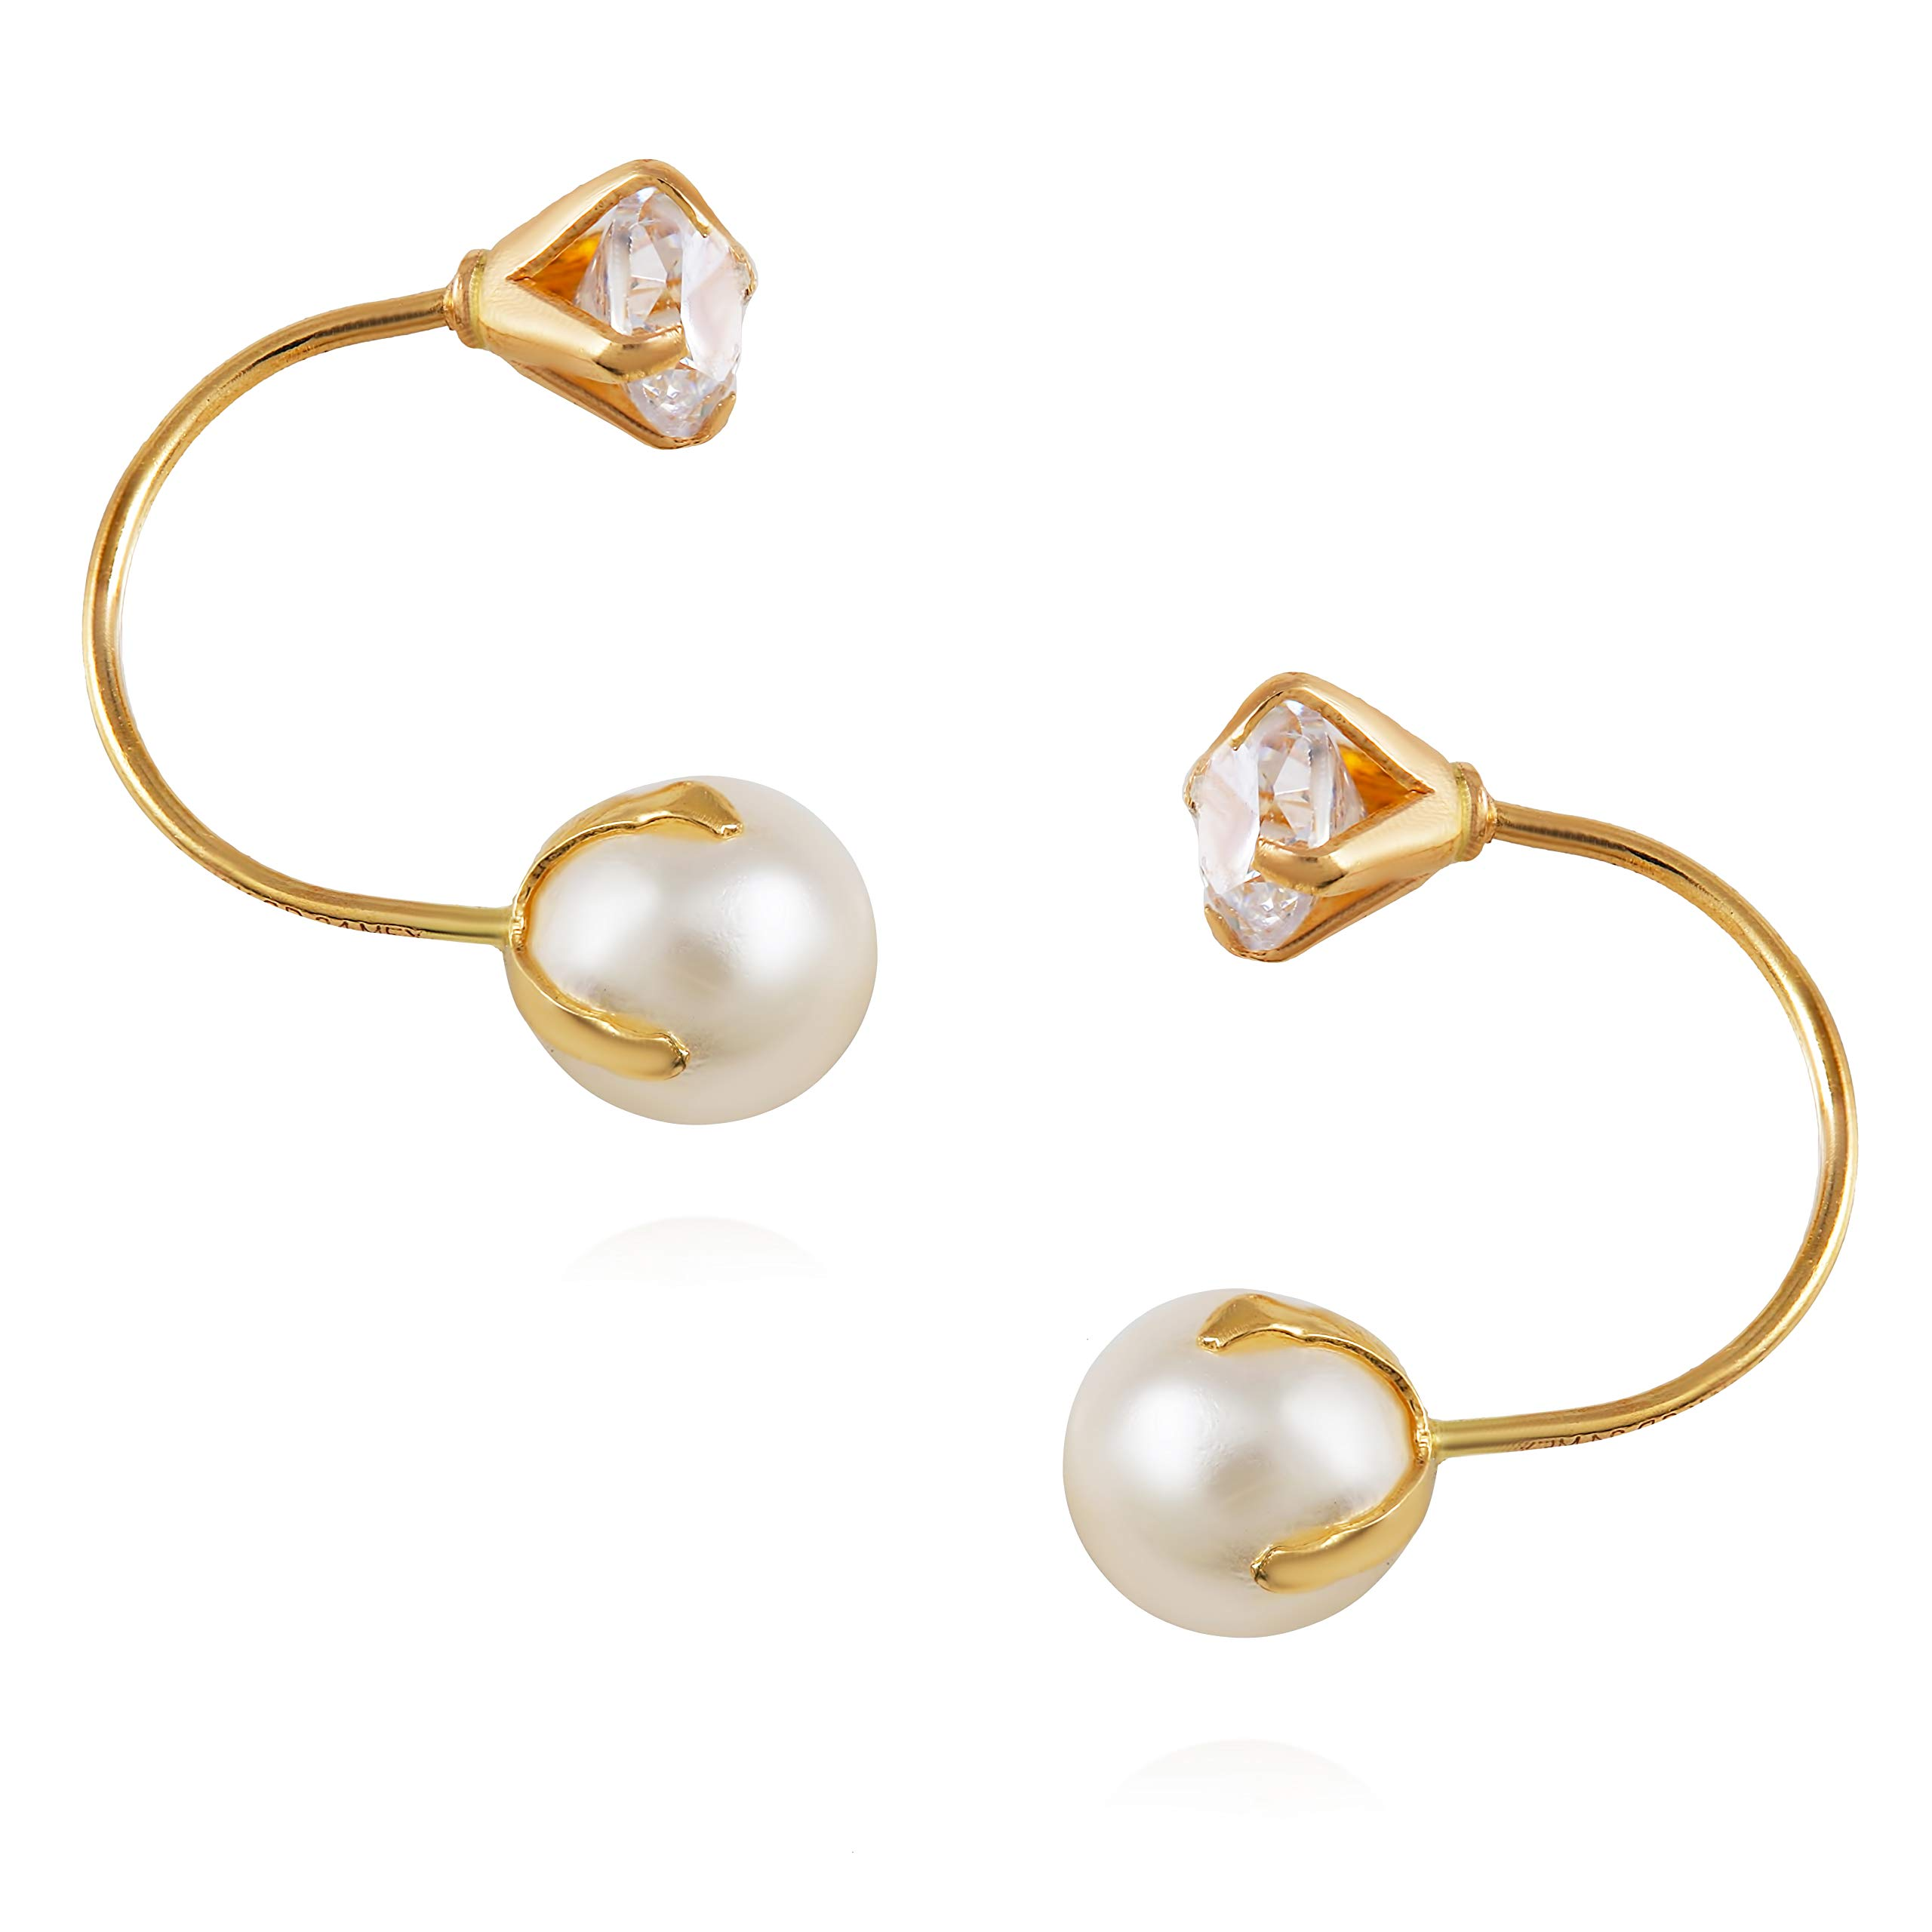 14K Yellow Gold Jacket CZ Stud Earrings for Women and Girls - Hypoallergenic(Pearl)